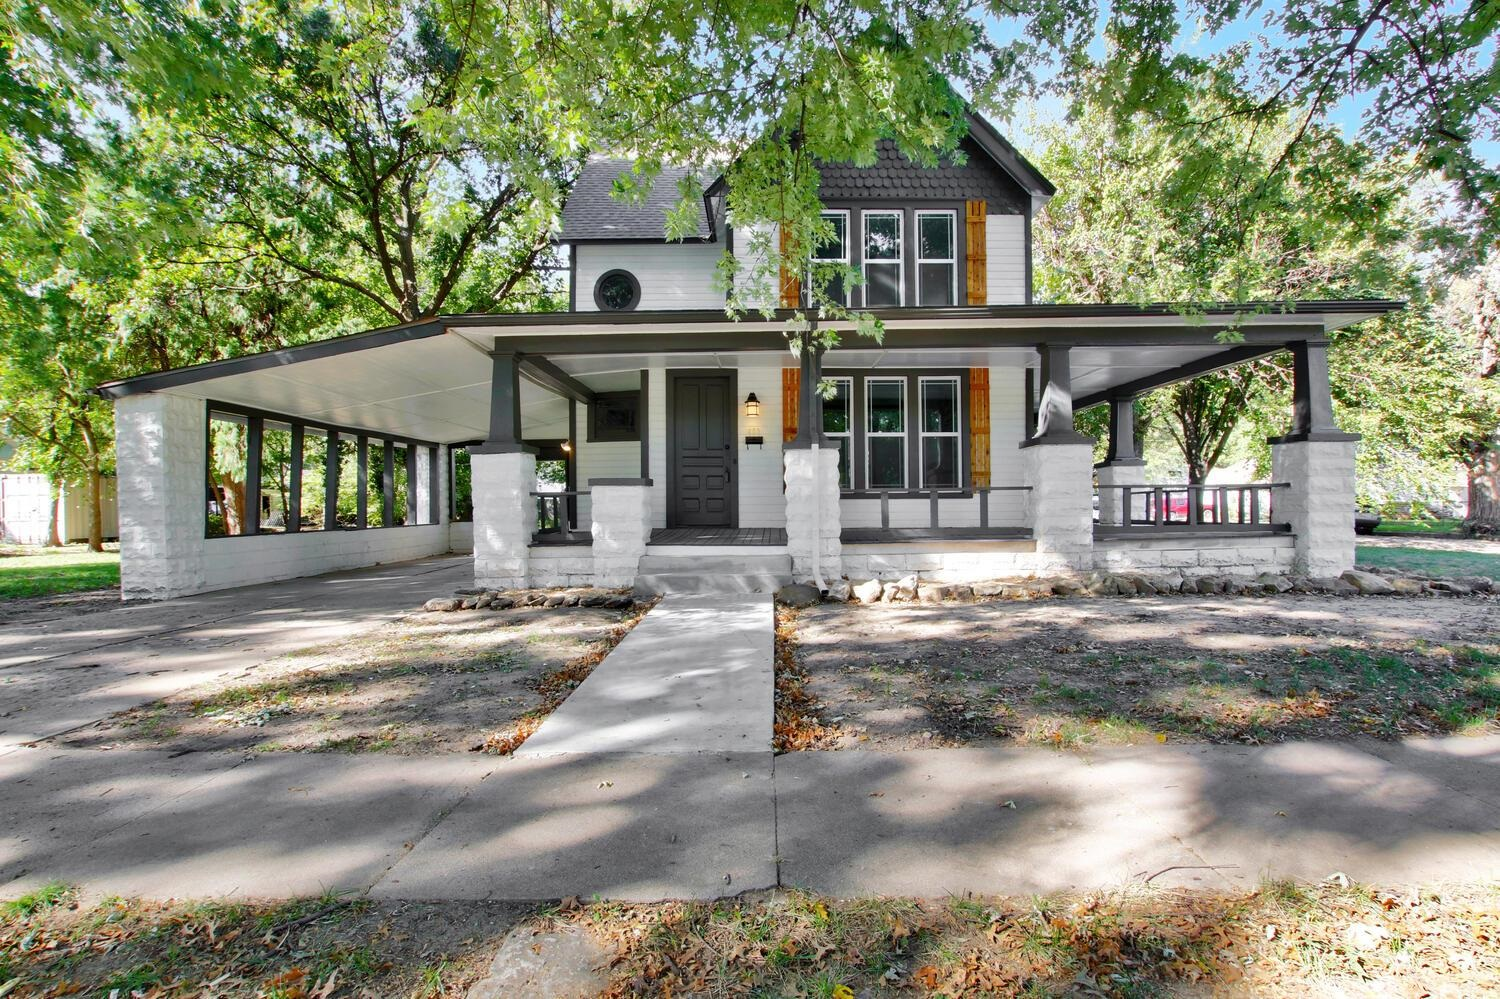 Completely remodeled 3 bedroom home in one of Wichitas best kept secrets - East Front! The gorgeous